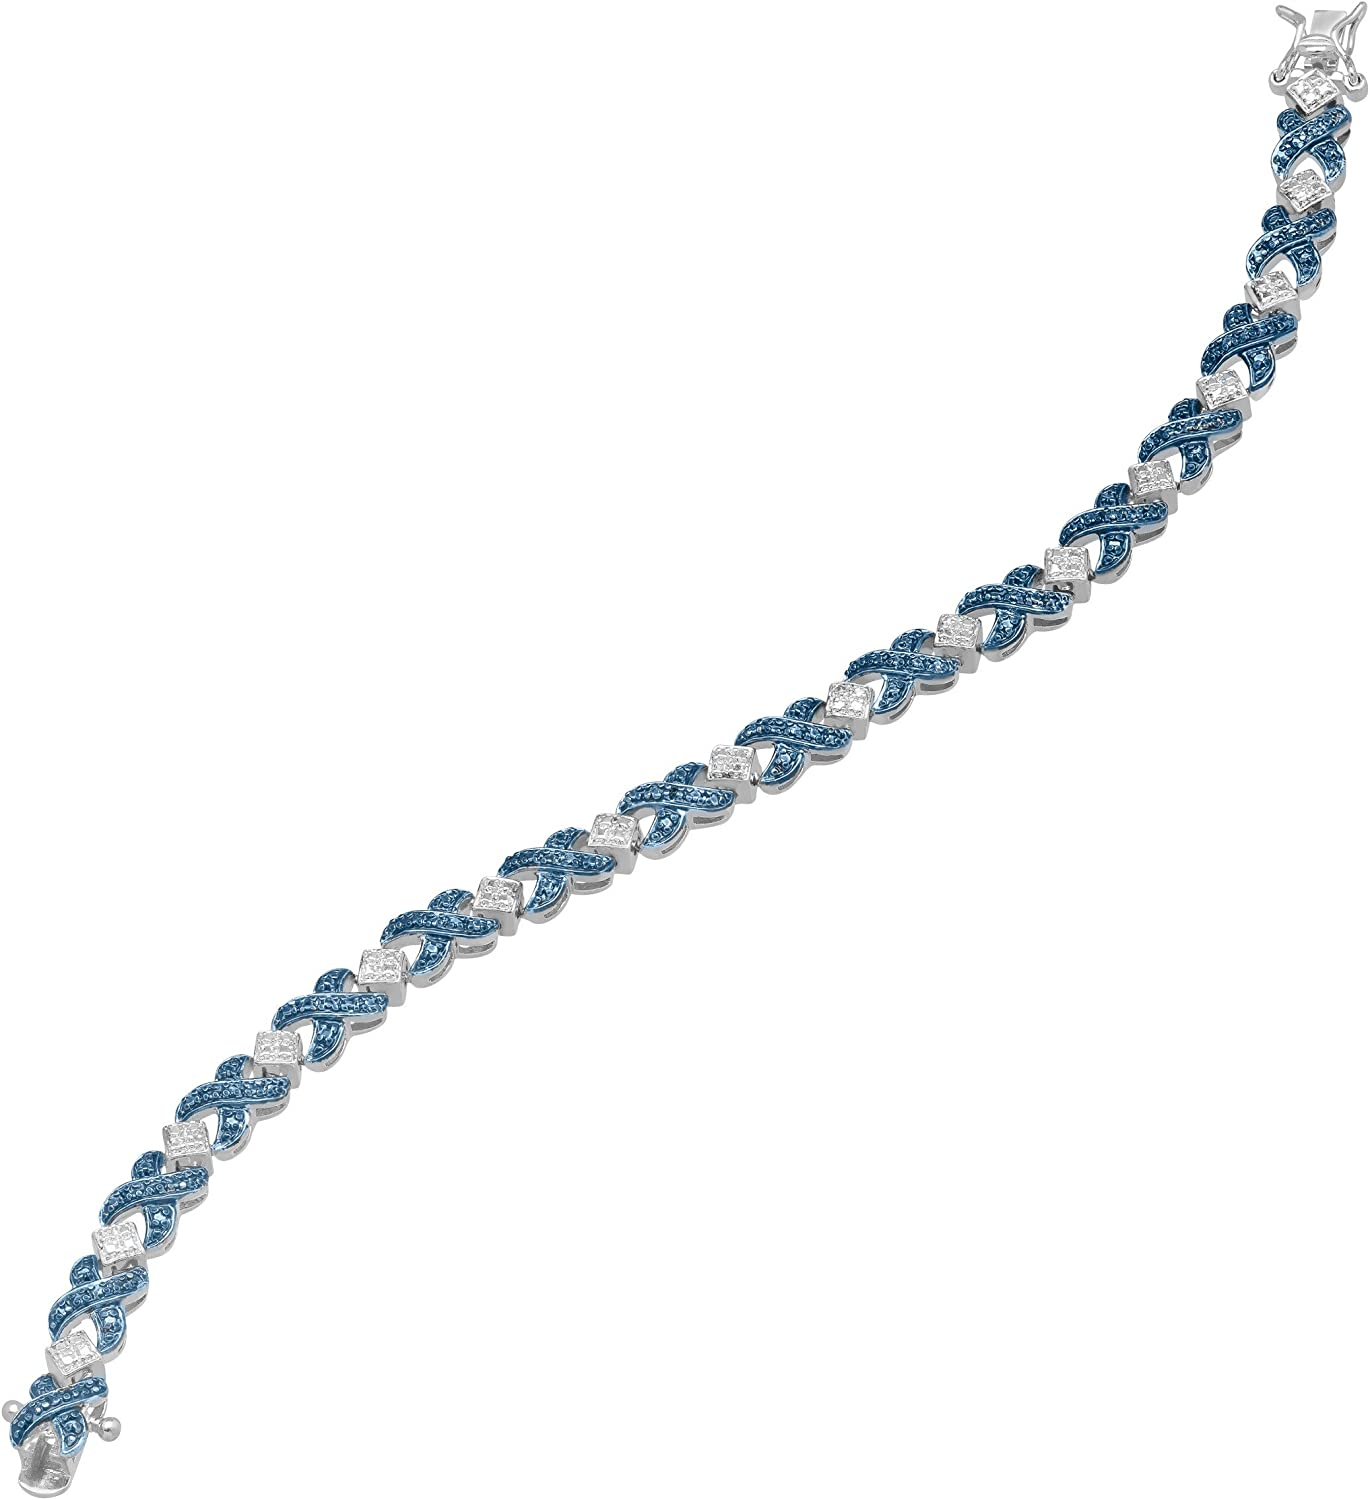 7.25 XOXO Tennis Bracelet with Blue Diamond in Sterling Silver-Plated Brass